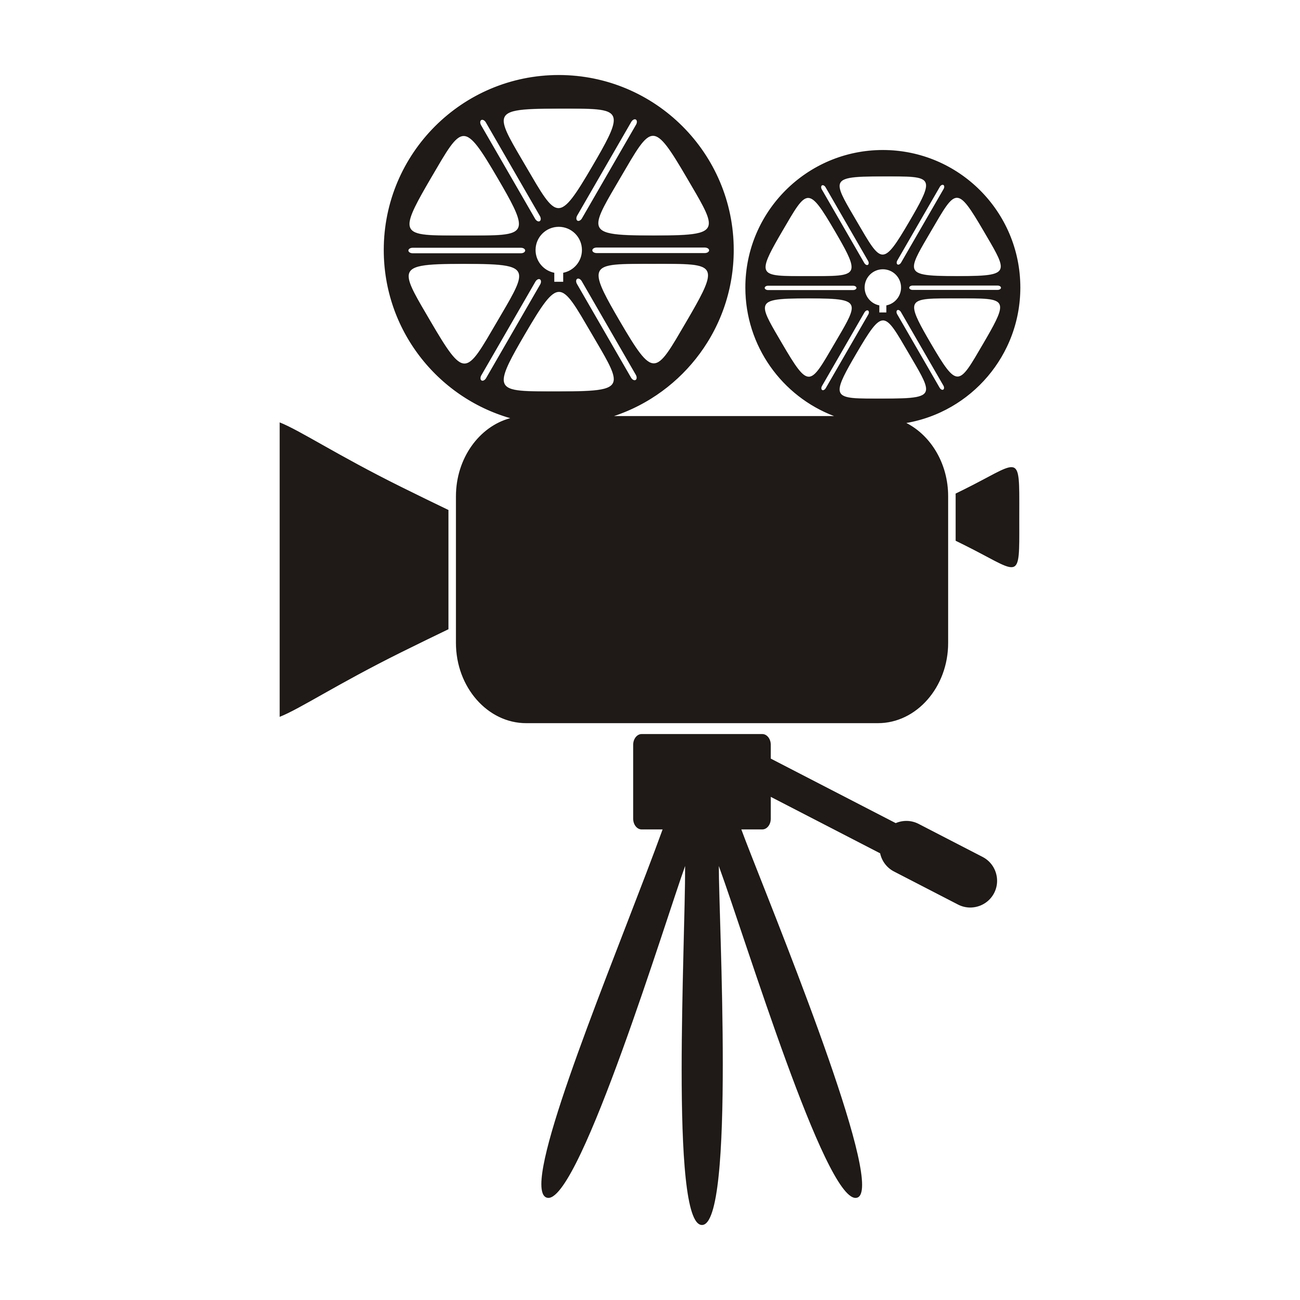 A movie camera icon representing our video production tips.